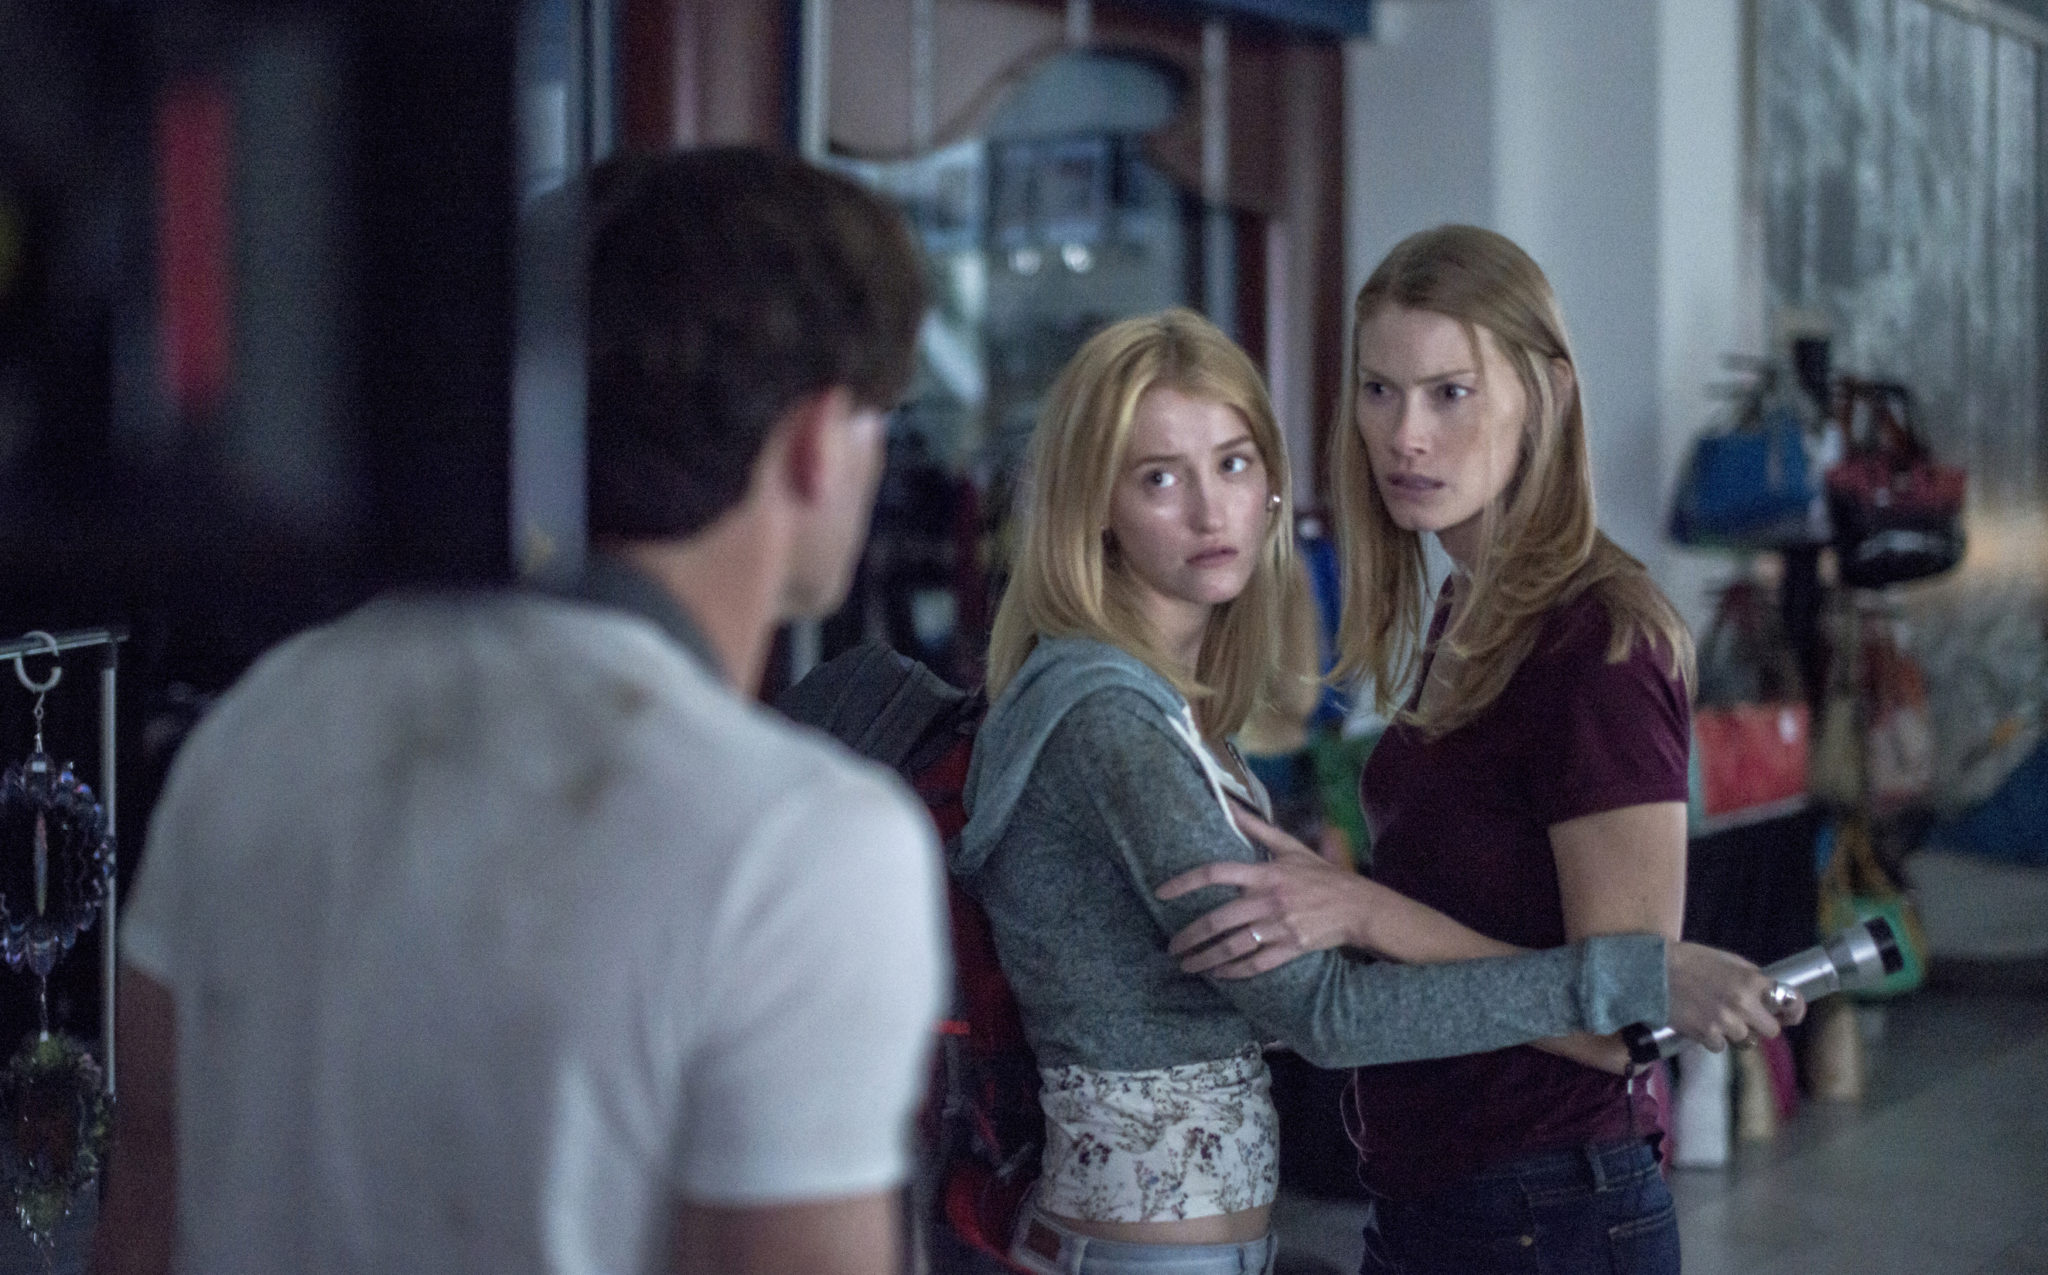 Photo of 'The Mist' favorite characters and why we loved them